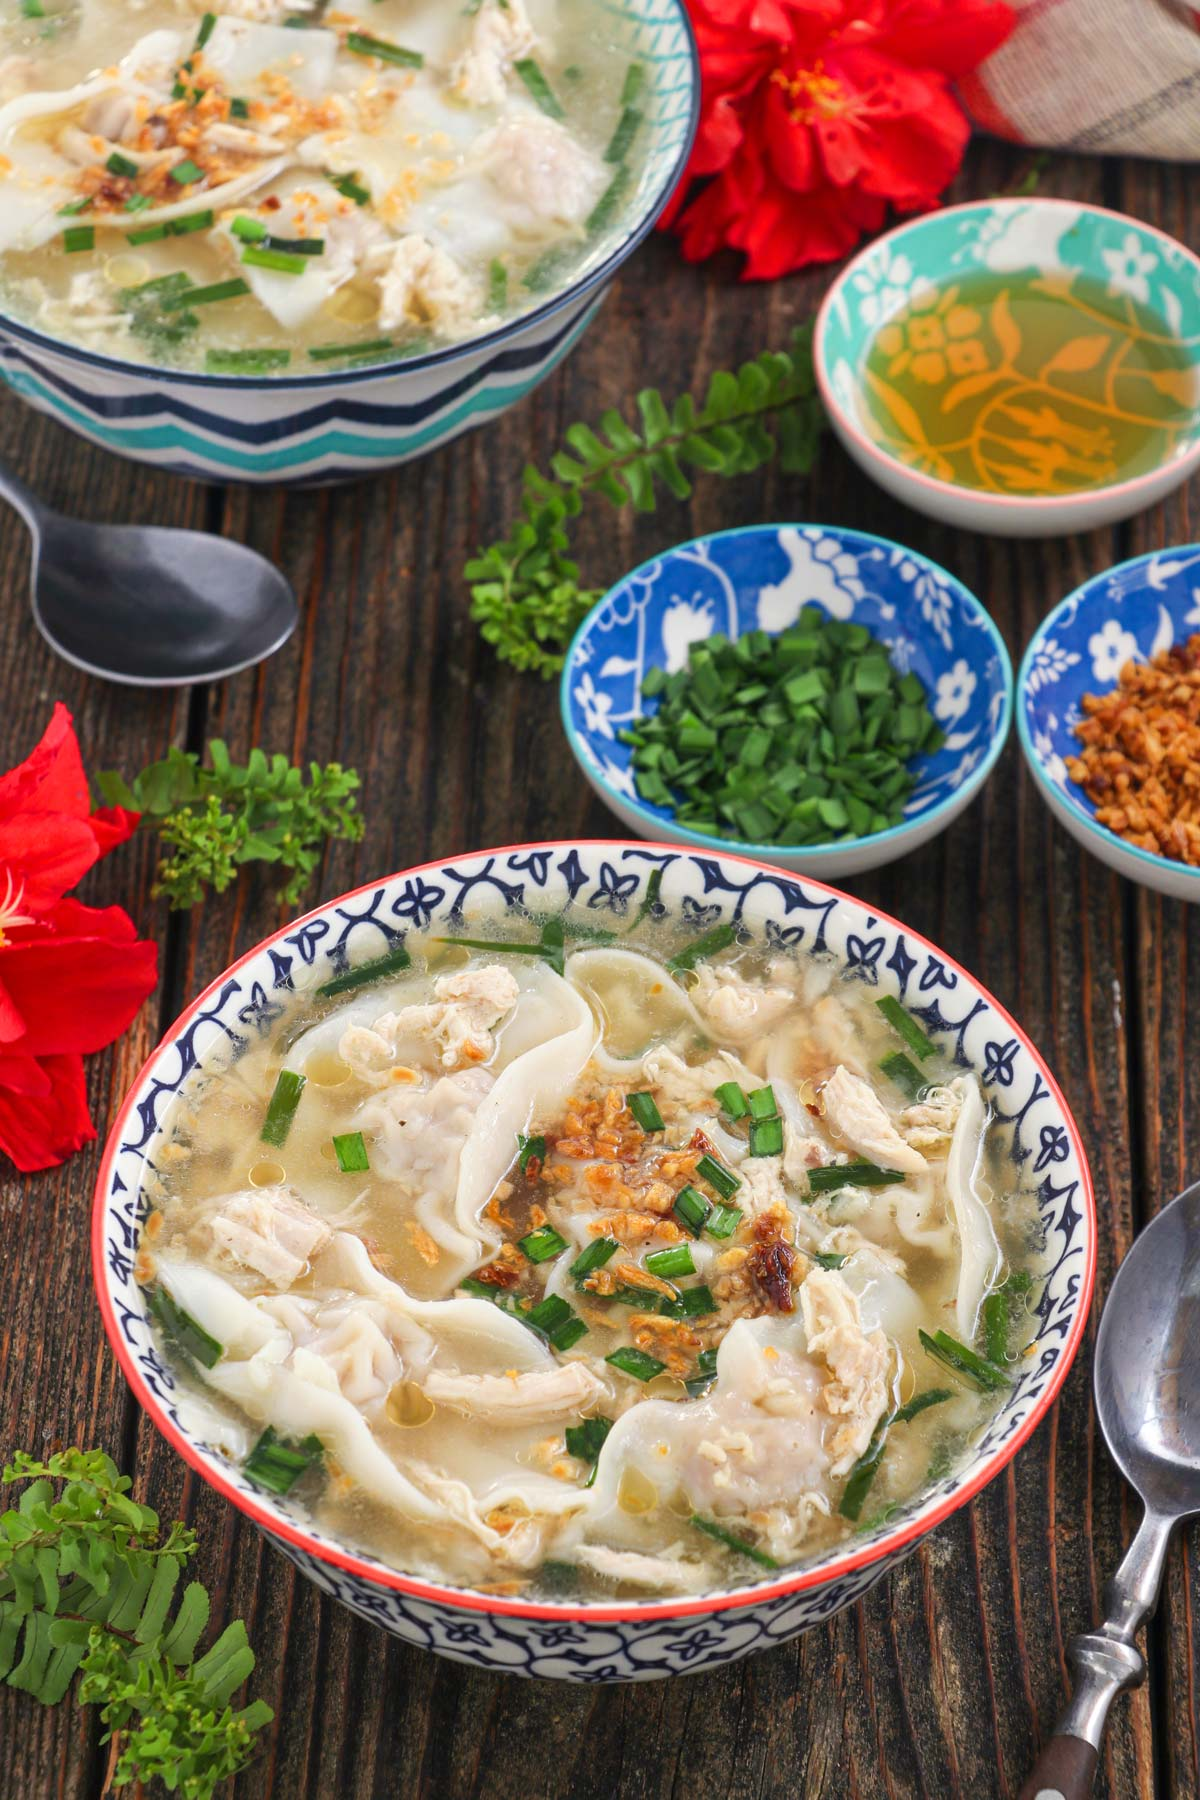 Bowls of warm pancit molo with green onions and toasted garlic.